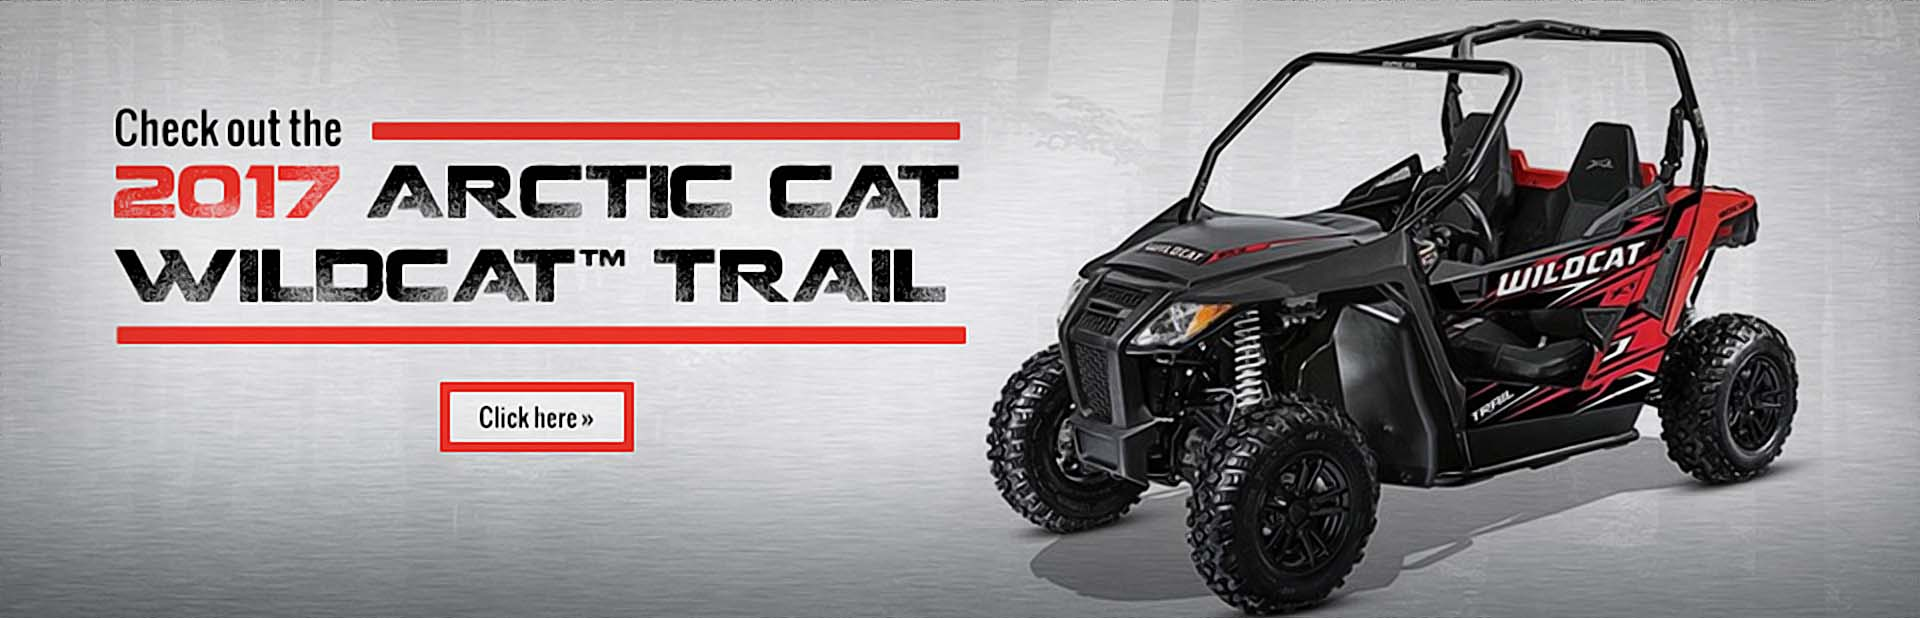 Click here to check out the 2017 Arctic Cat Wildcat™ Trail!